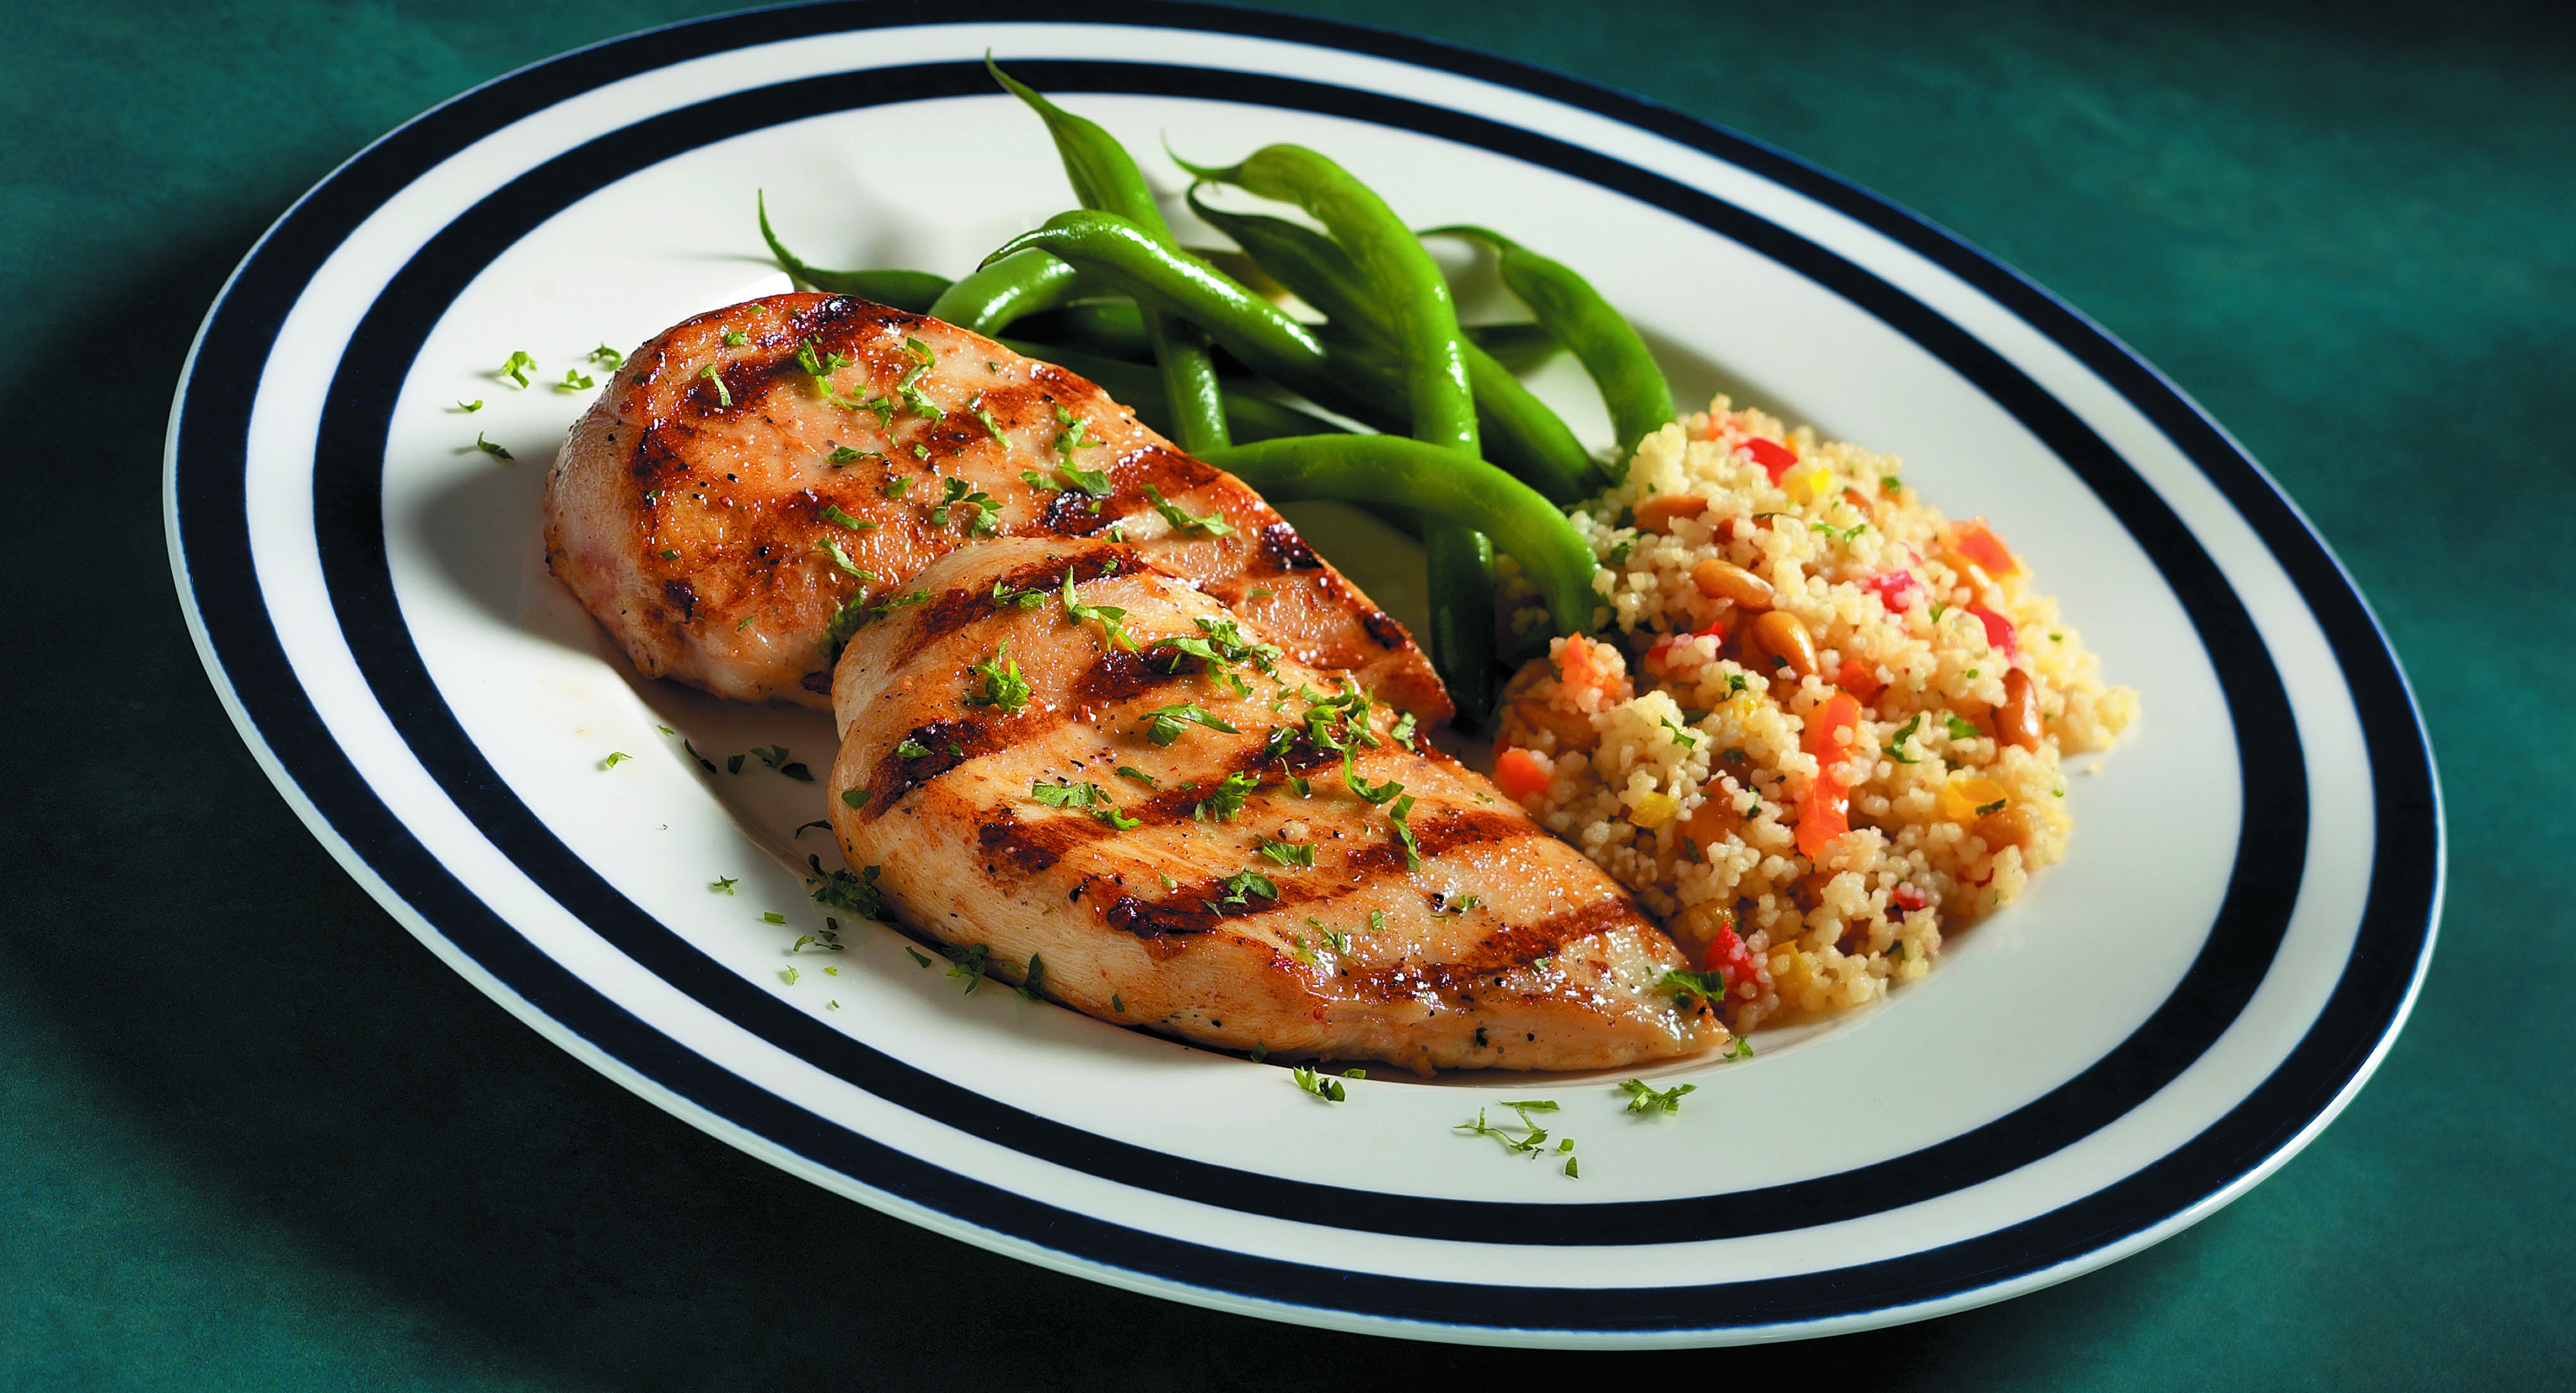 Grill Gourmet Fillets w/ Grill Marks image